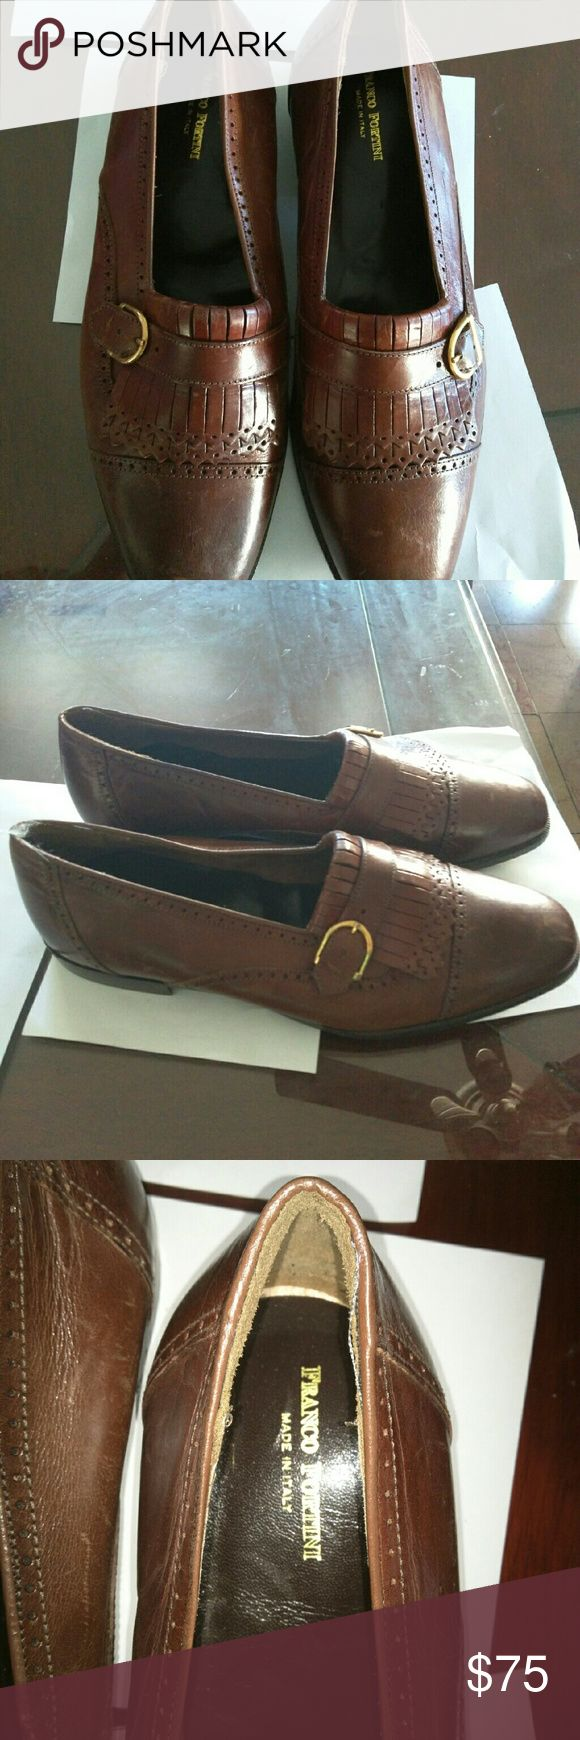 Franco Fortini Men's Formal Shoes Very good condition! Franco Fortini Shoes Loafers & Slip-Ons